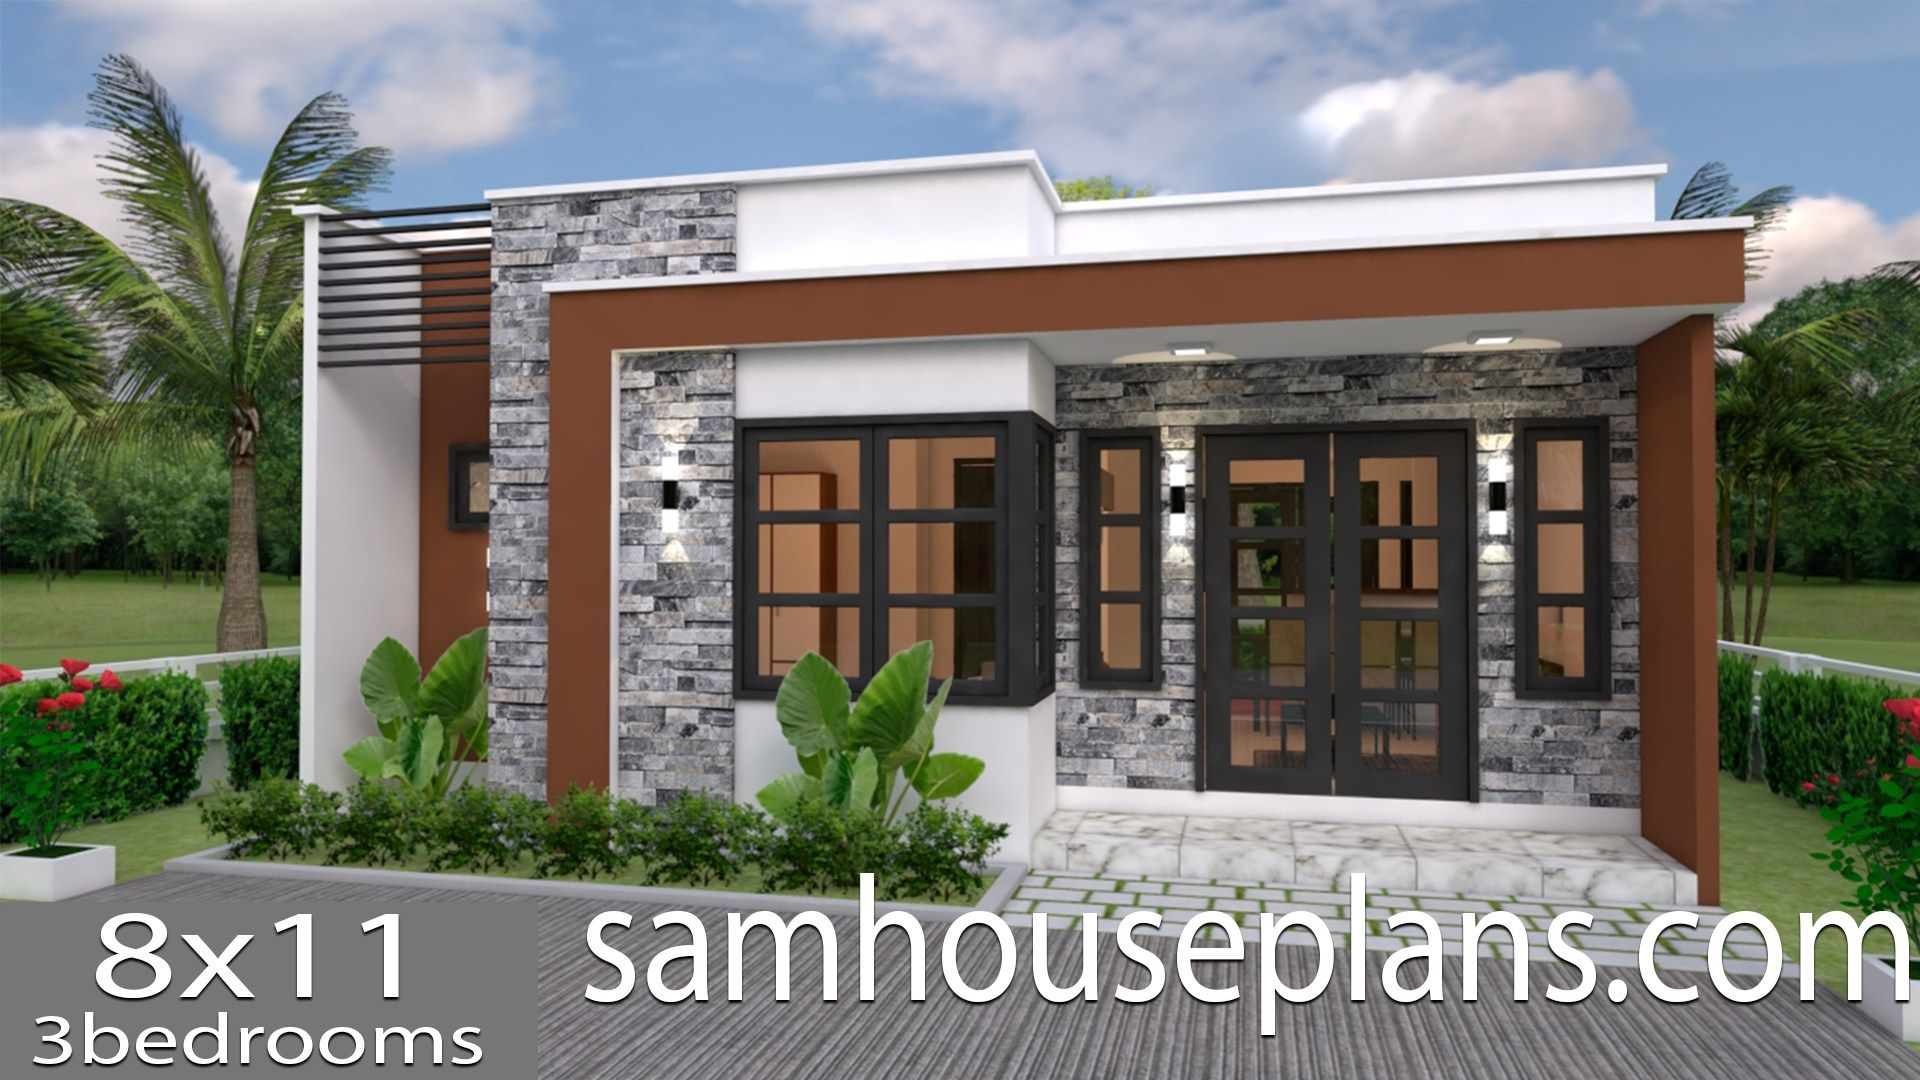 House Plans 8x11 with 3 bedrooms Full Plans in 2020 | House plans ...